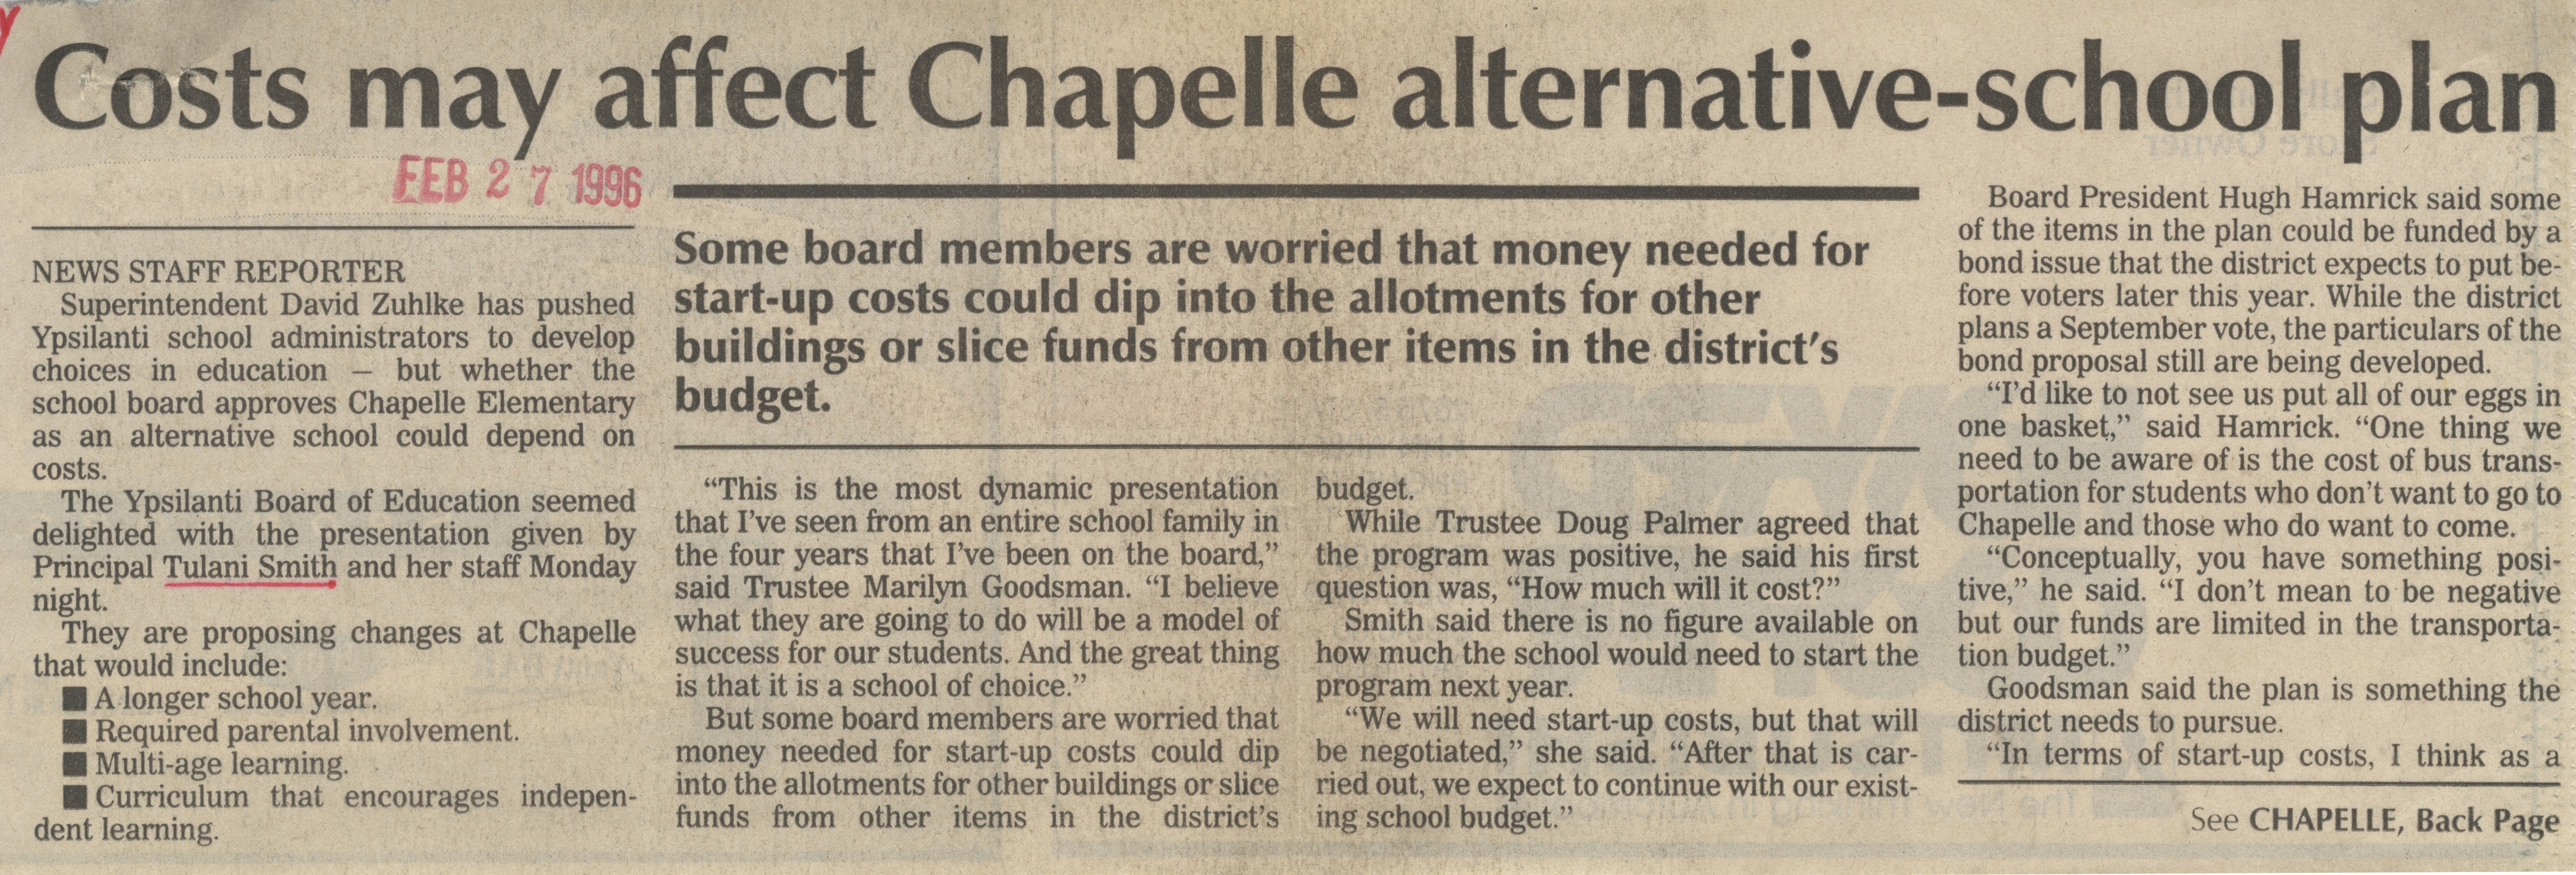 Costs May Affect Chapelle Alternative-School Plan image